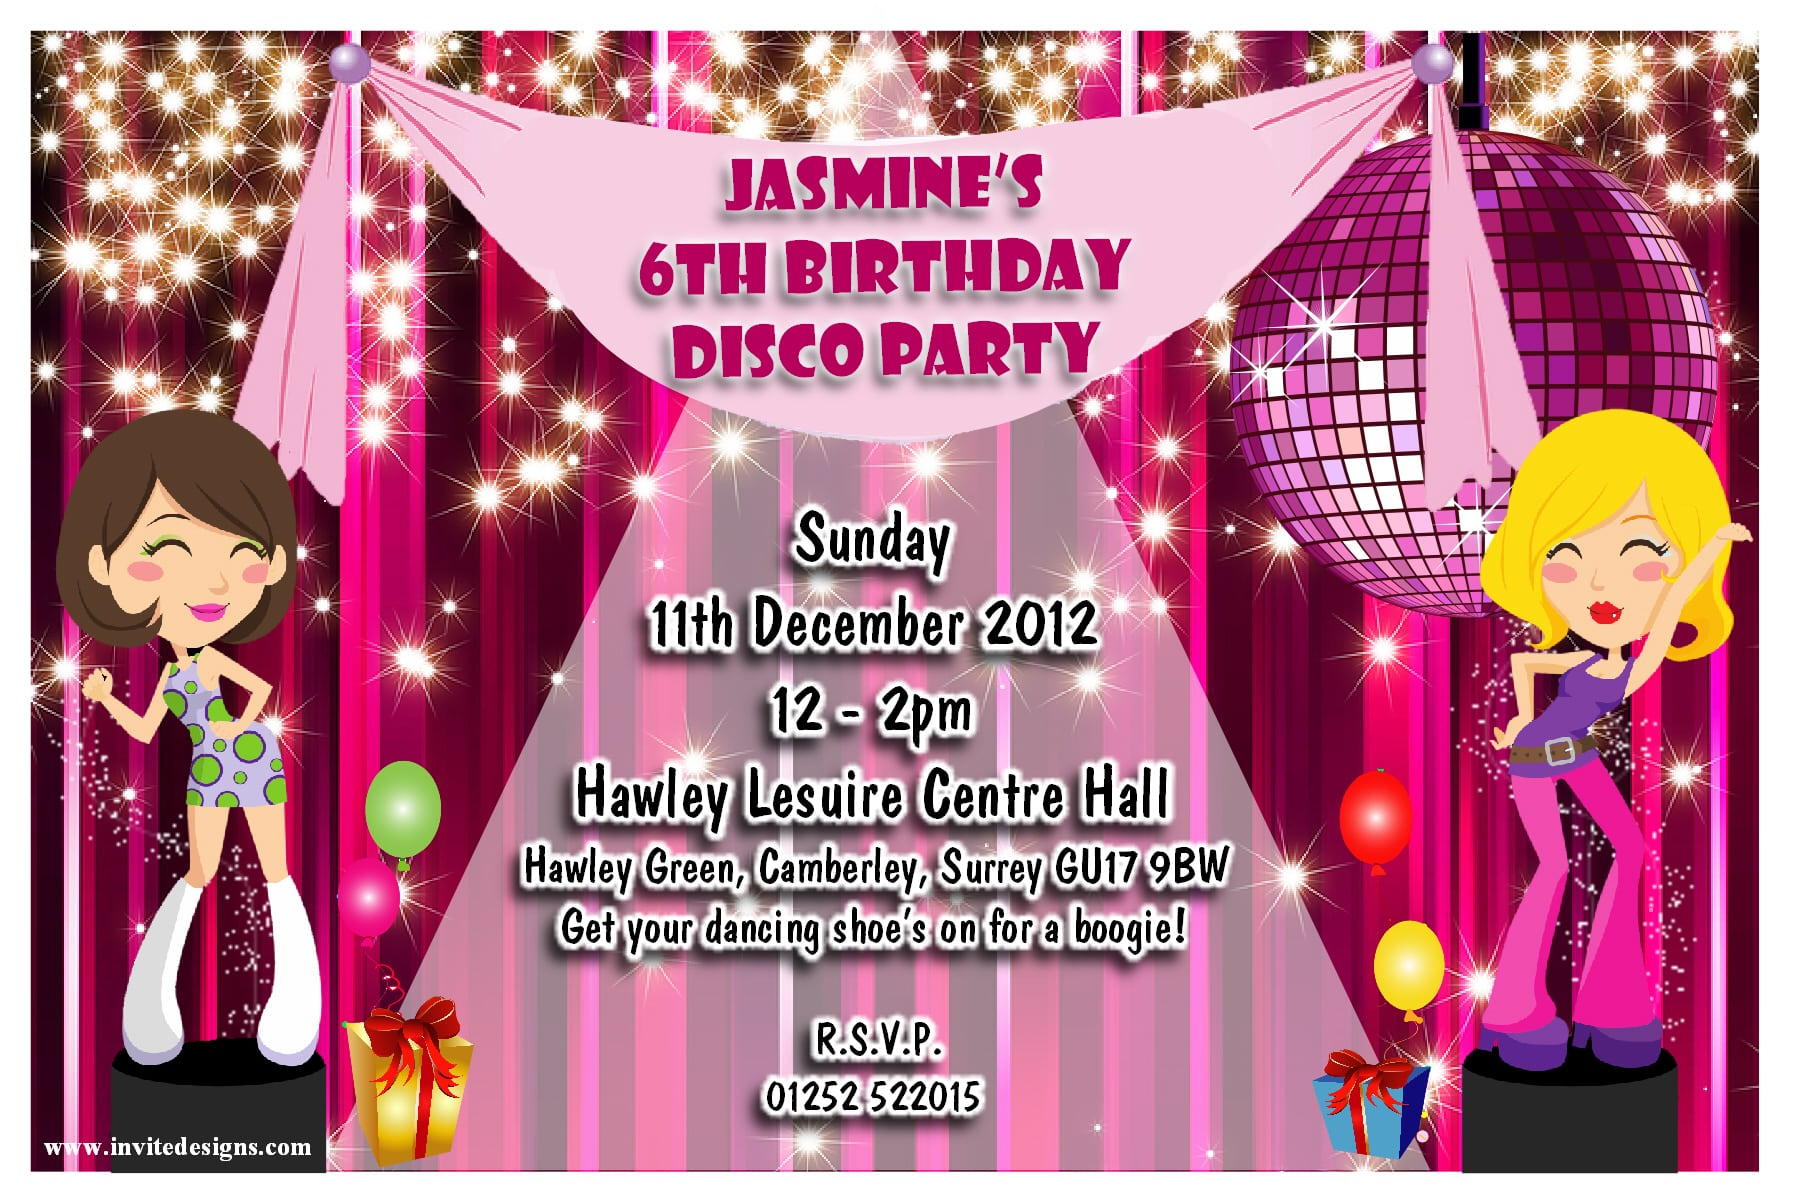 Disco Party Invitation Template – Disco Party Invitations Free